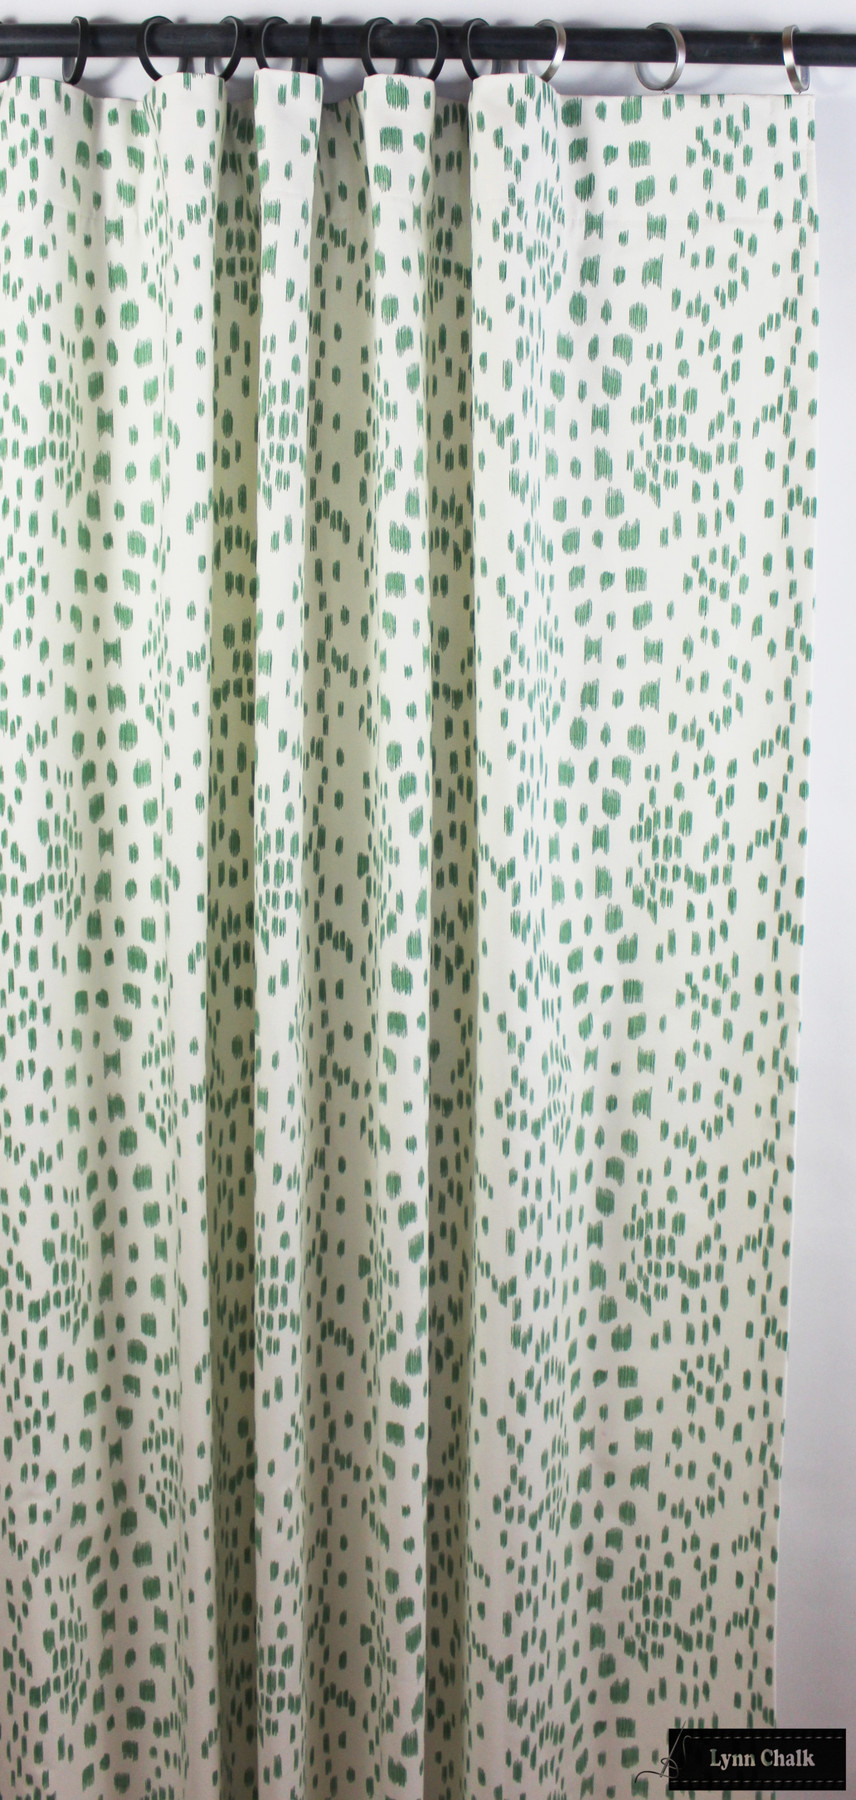 Custom Drapes in Les Touches Green